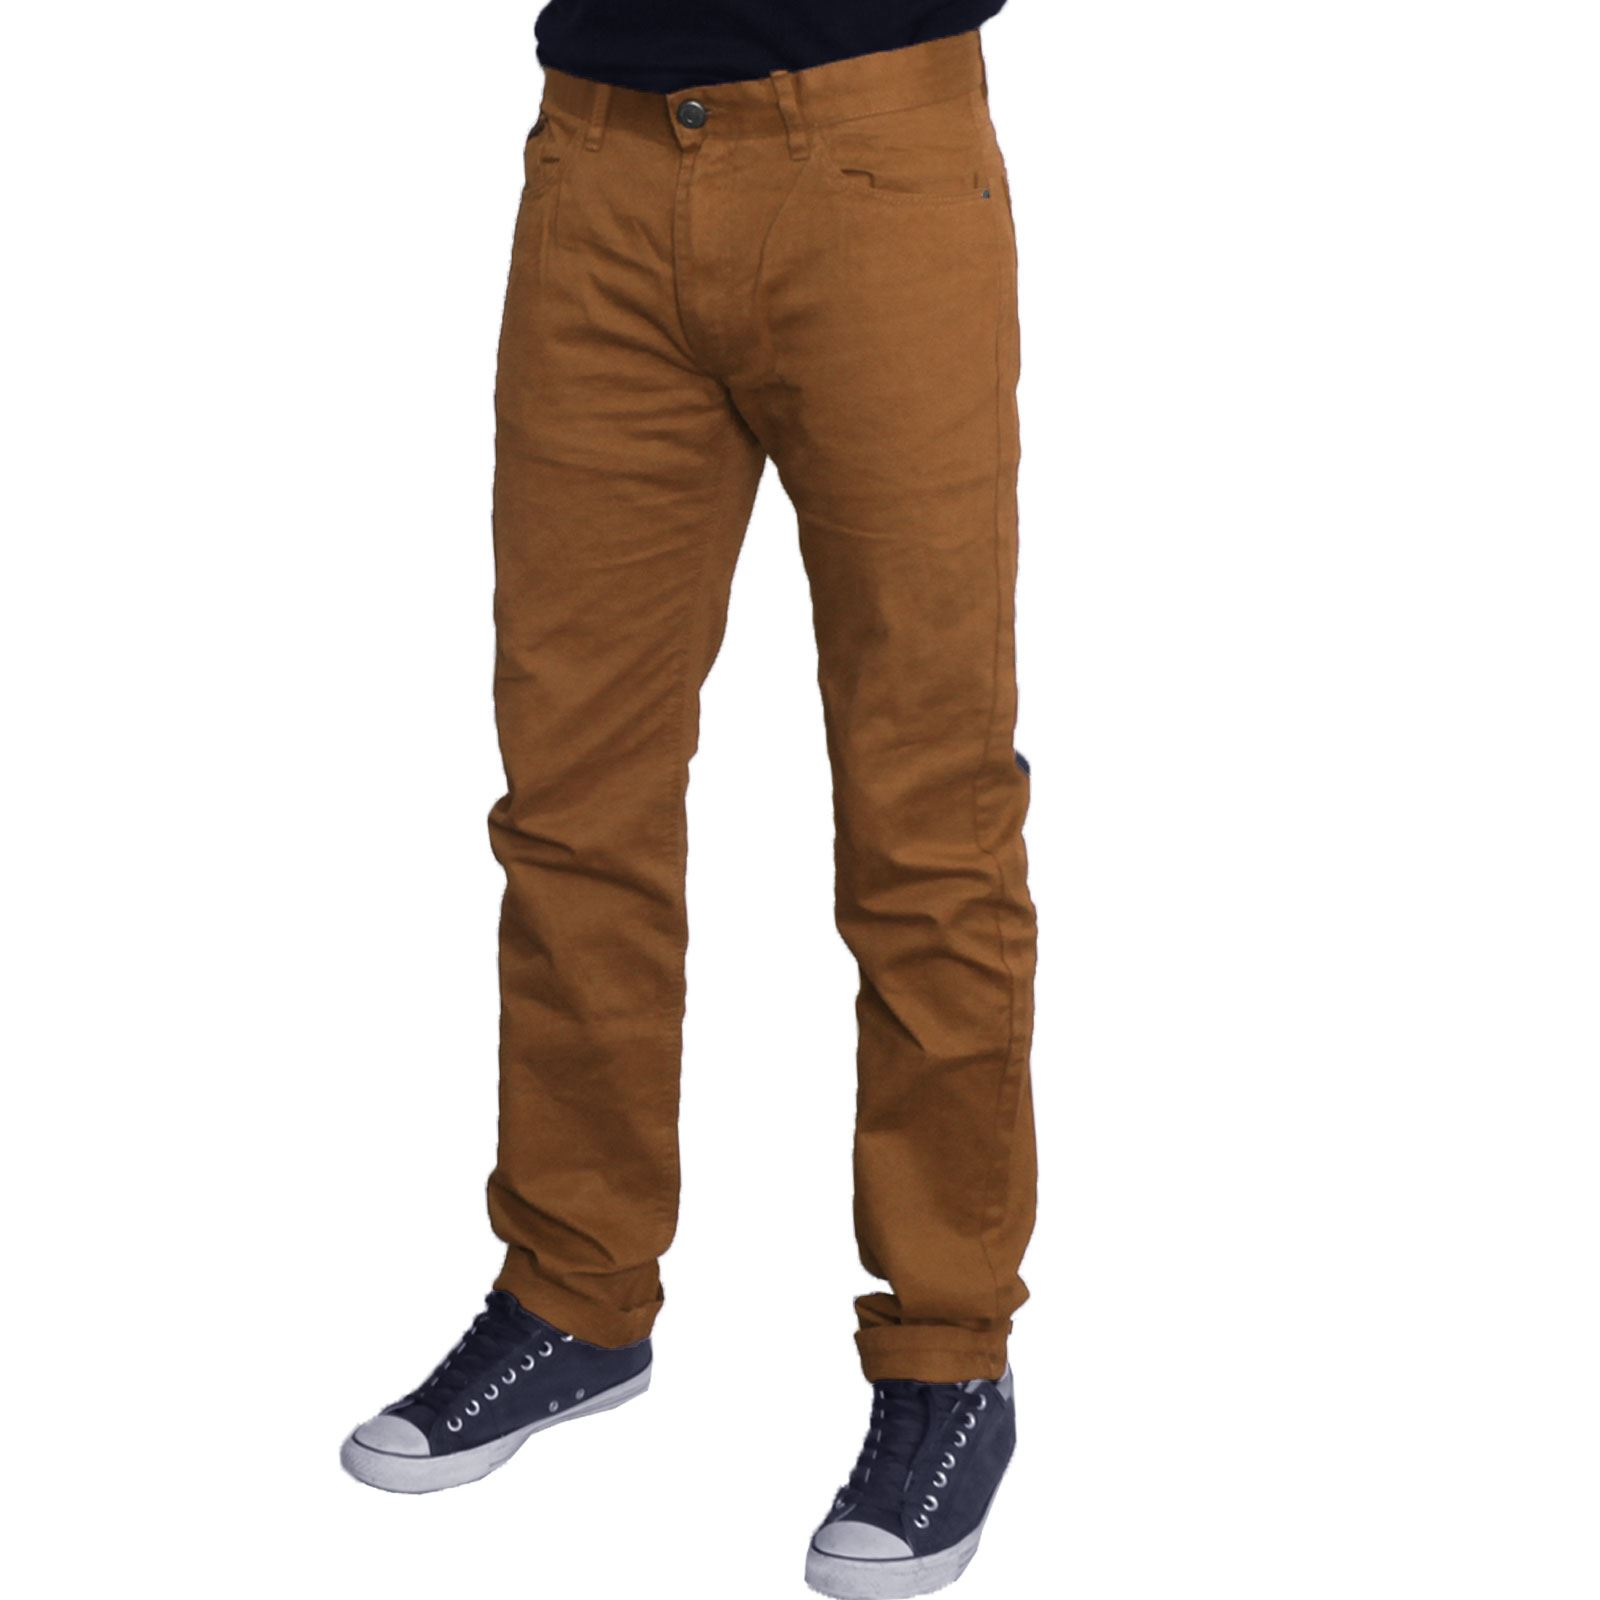 Shop for Levi's Mens Cargo Pants Slim Fit Cuffed. Free Shipping on orders over $45 at coolnup03t.gq - Your Online Men's Clothing Shop! Get 5% in rewards with Club O! -